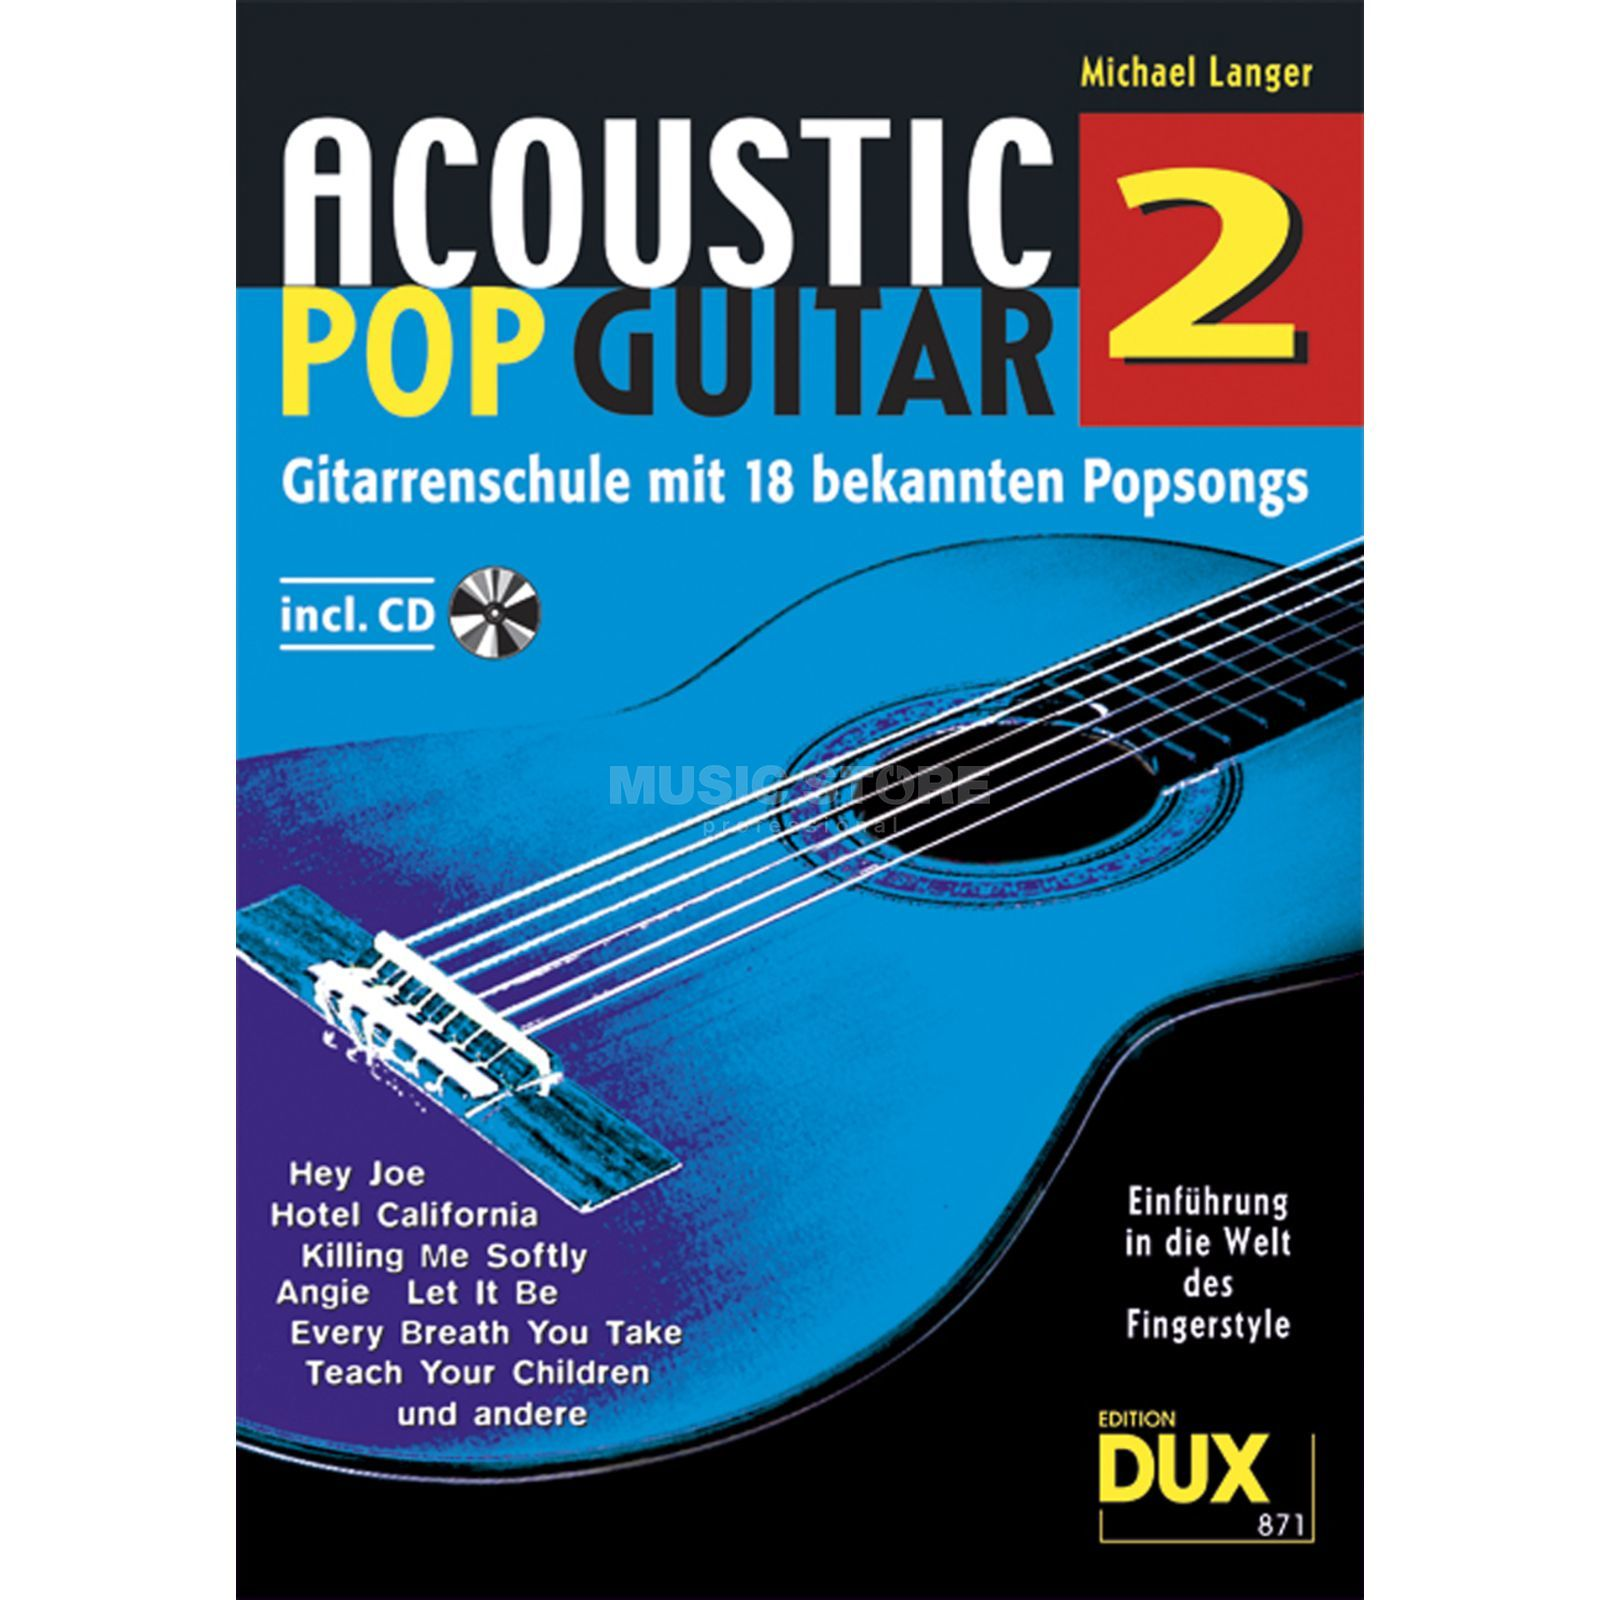 Edition Dux Acoustic Pop Guitar Band 2 Gitarrenschule Produktbild